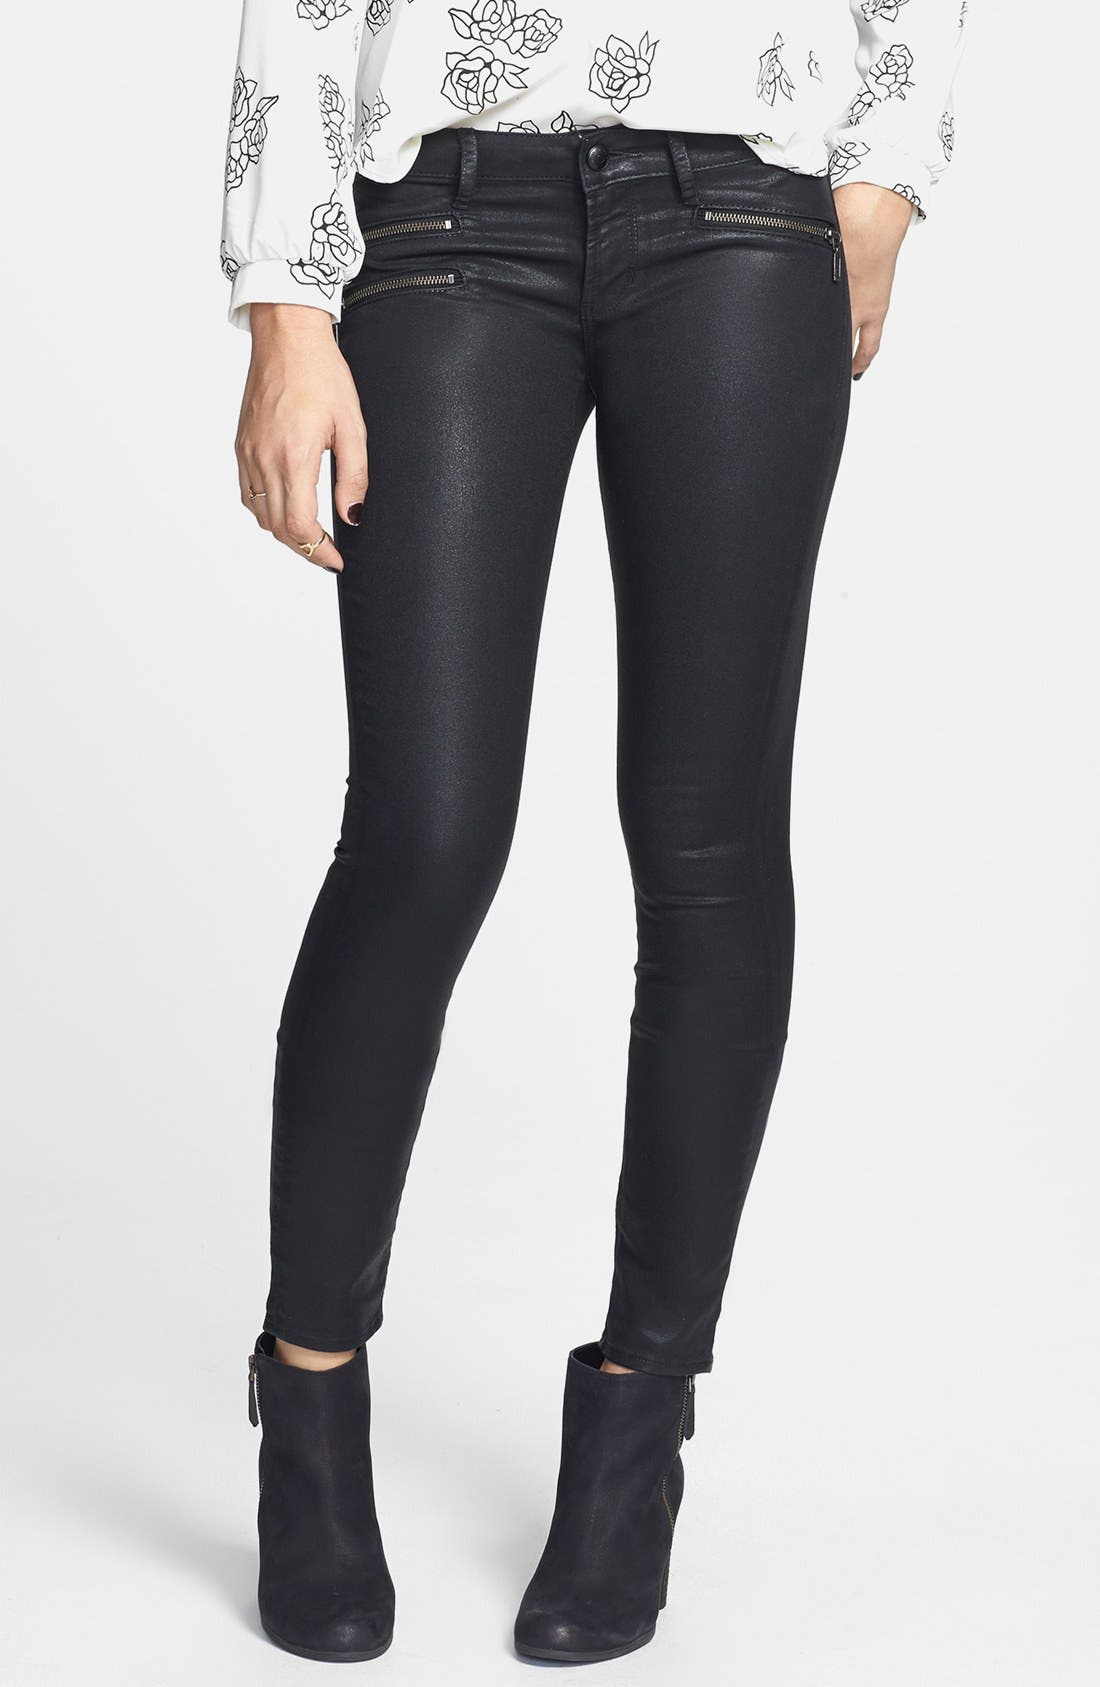 Alternate Image 1 Selected - Articles of Society 'Mya' Zipper Detail Coated Skinny Jeans (Juniors) (Online Only)